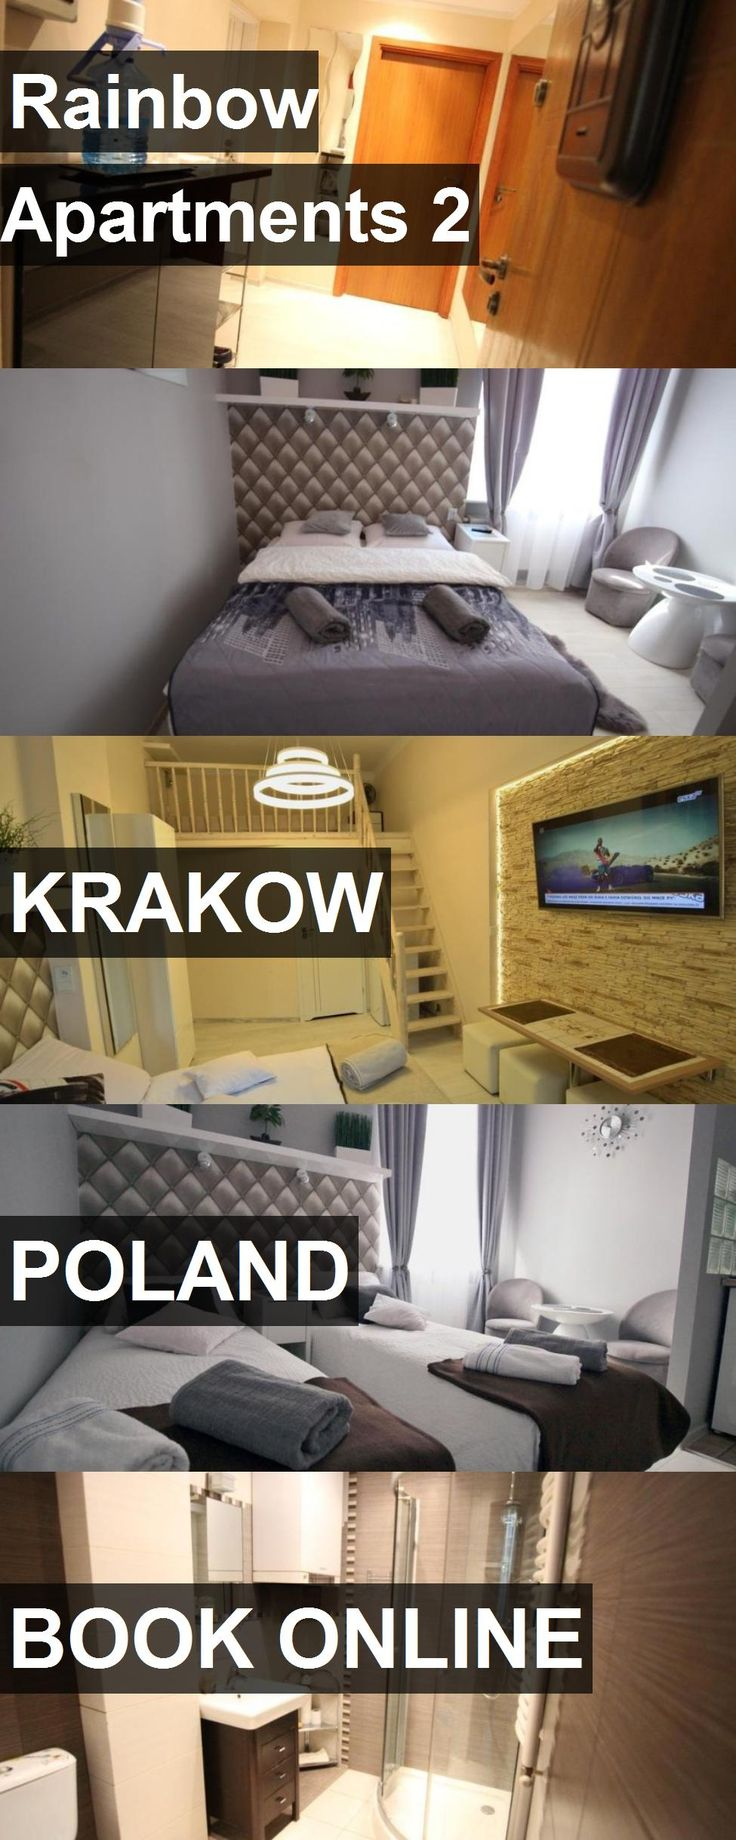 Hotel Rainbow Apartments 2 in Krakow, Poland. For more information, photos, reviews and best prices please follow the link. #Poland #Krakow #RainbowApartments2 #hotel #travel #vacation